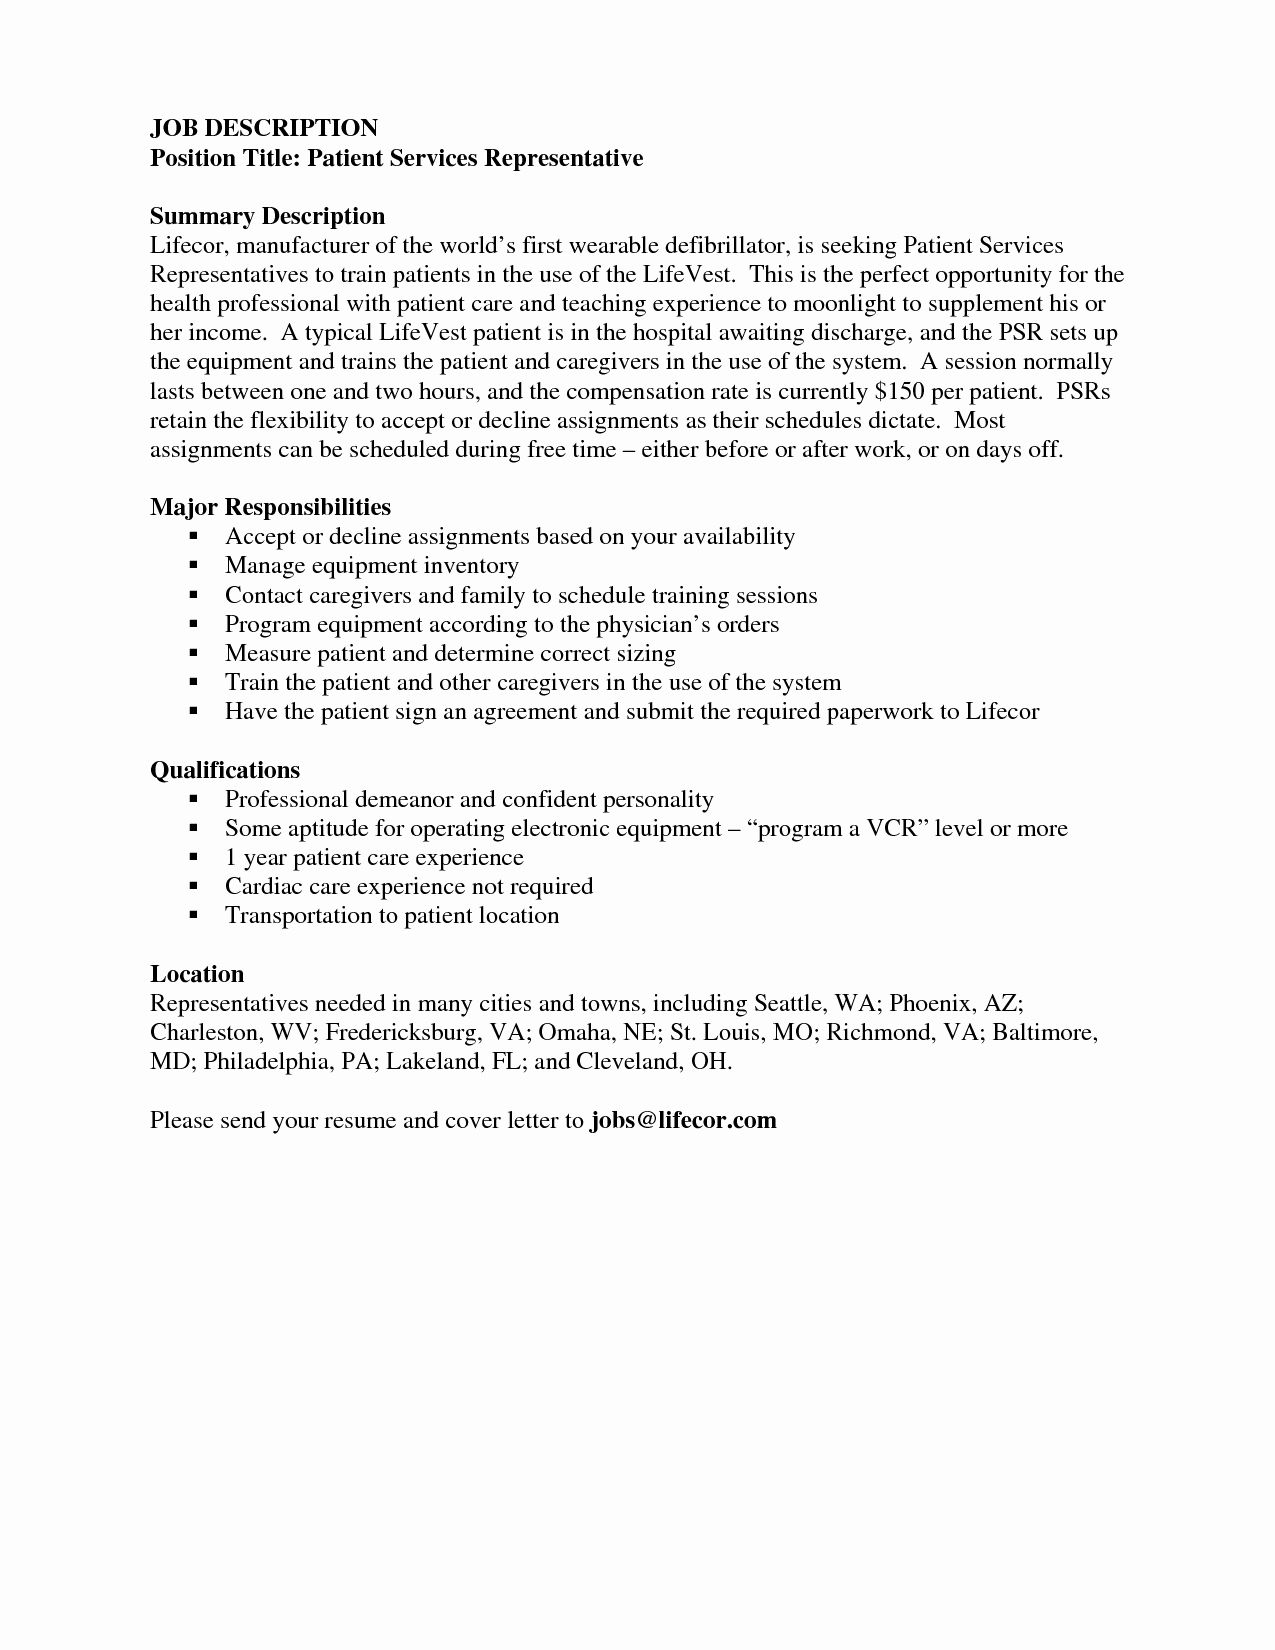 Financial Service Representative Resume New Patient Service Representative Resume Financial Objective